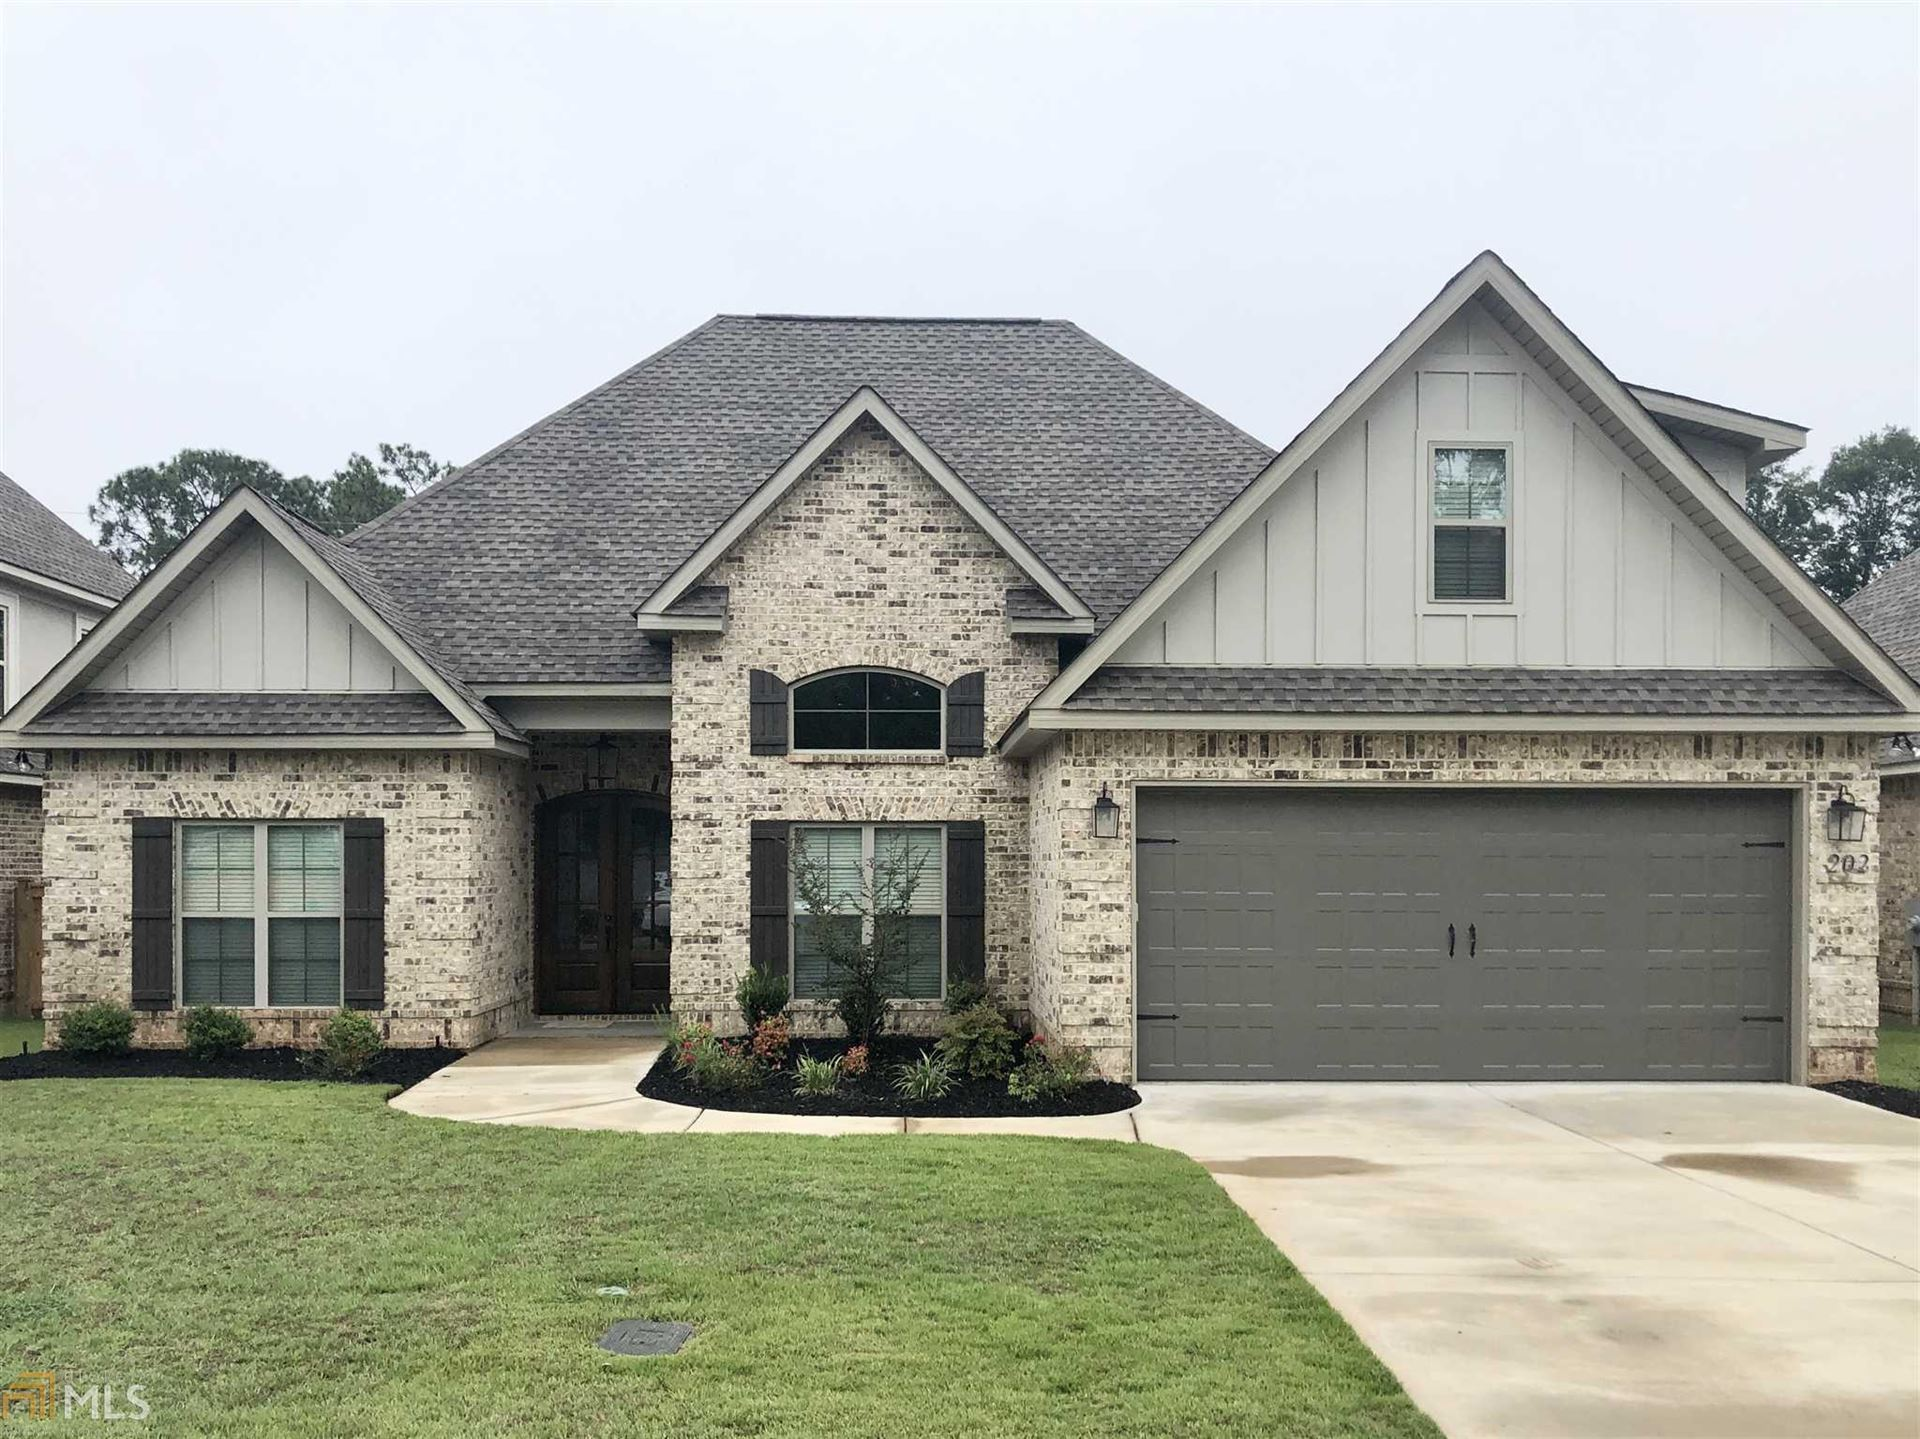 202 Landings Pointe Ln, Warner Robins, GA 31088 - #: 8555435